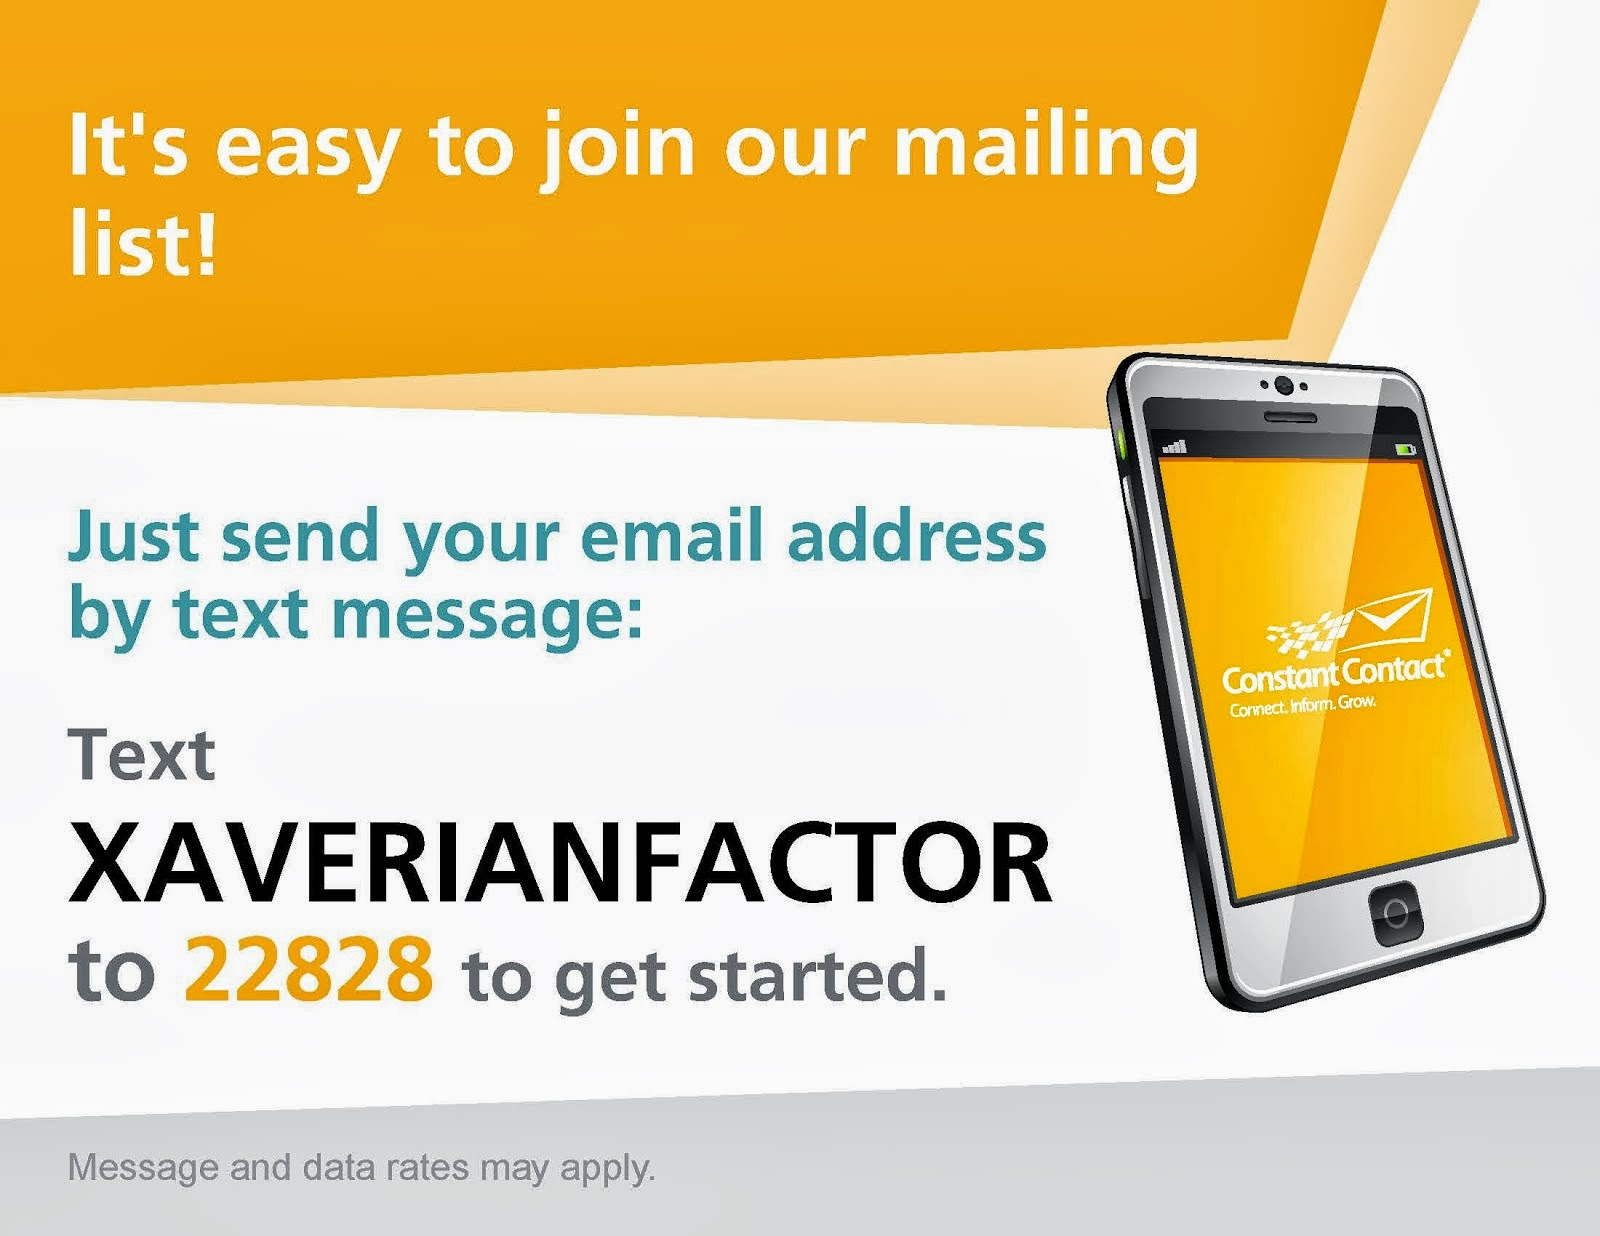 Get our E-Newsletter Xaverian Factor